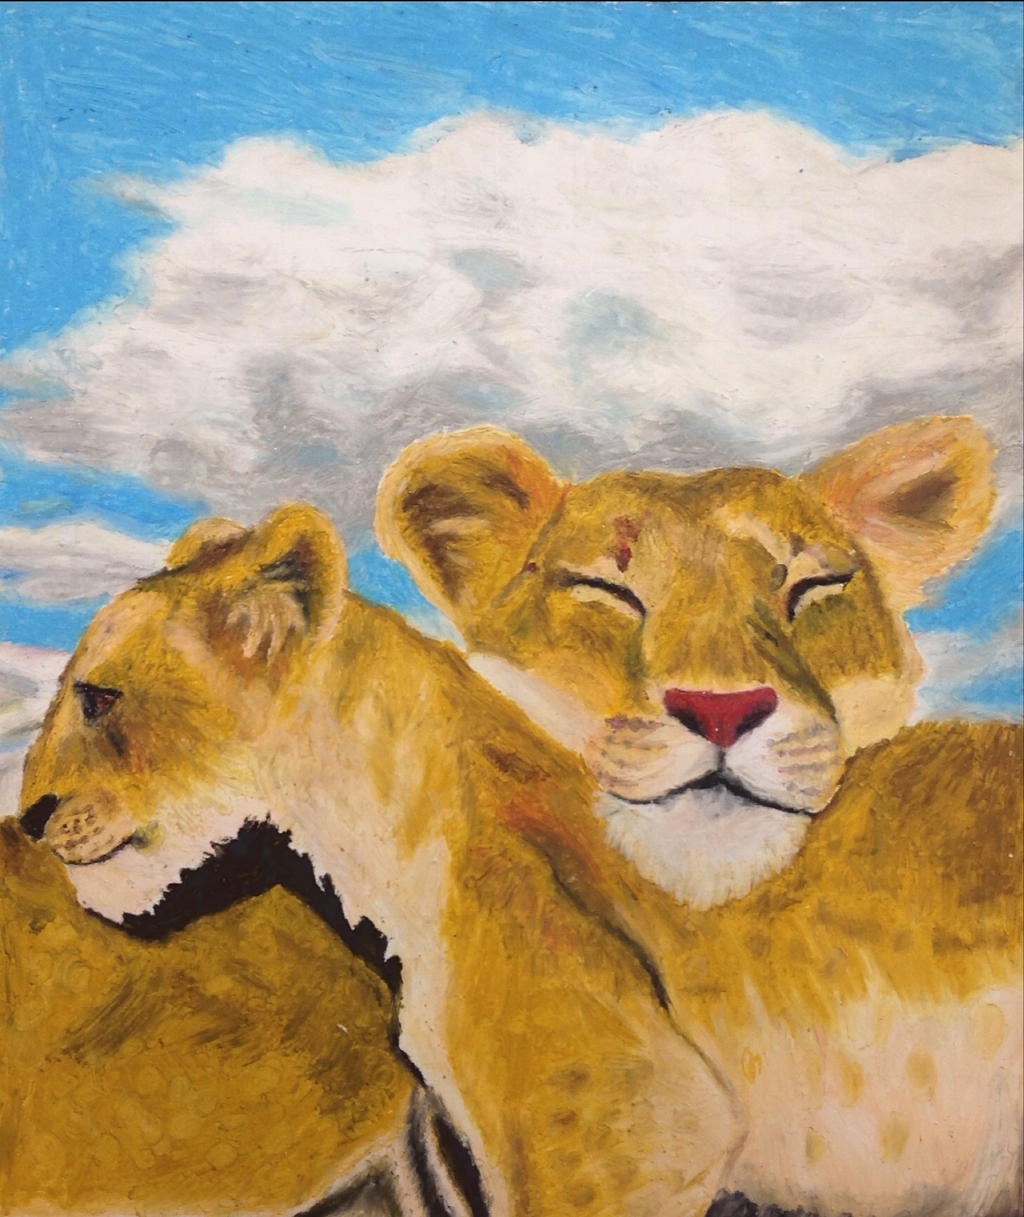 A lioness and her cub by Artdirector123